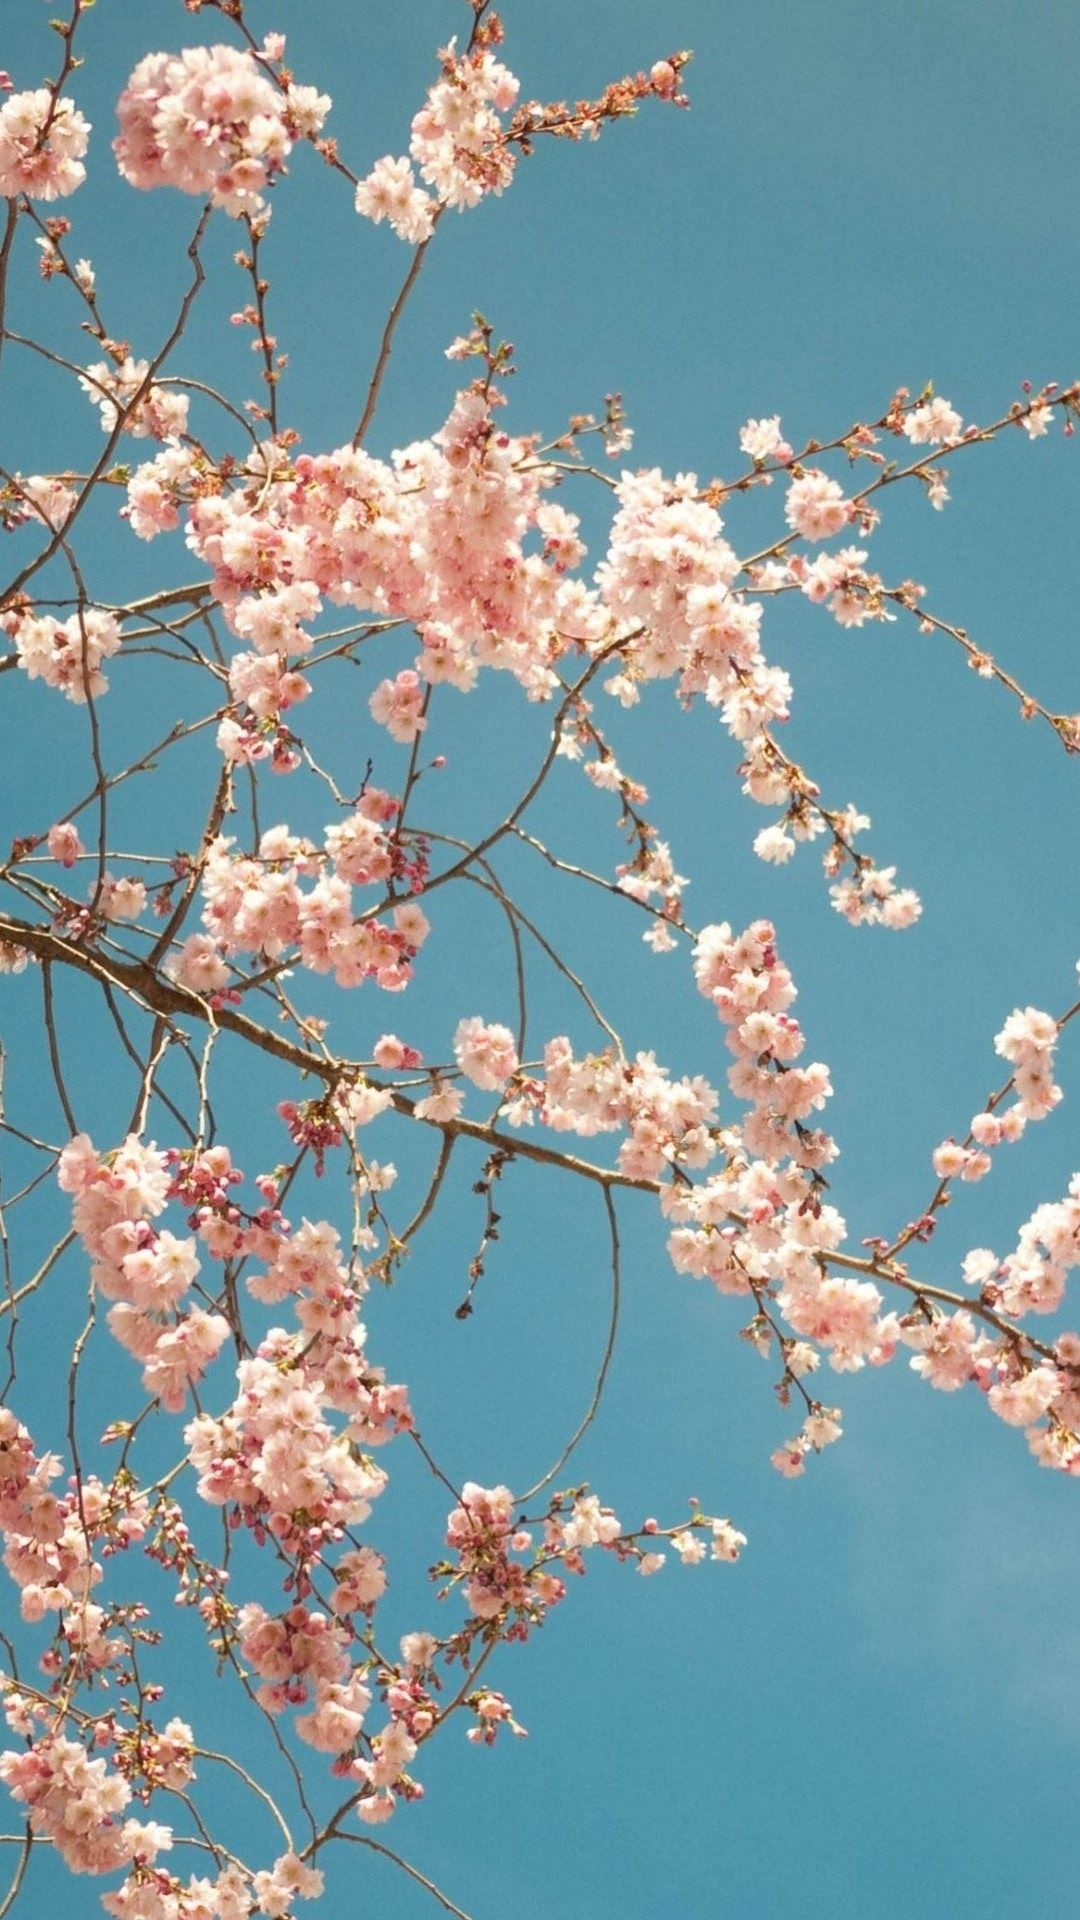 Aesthetic Cherry Blossom Iphone Wallpaper